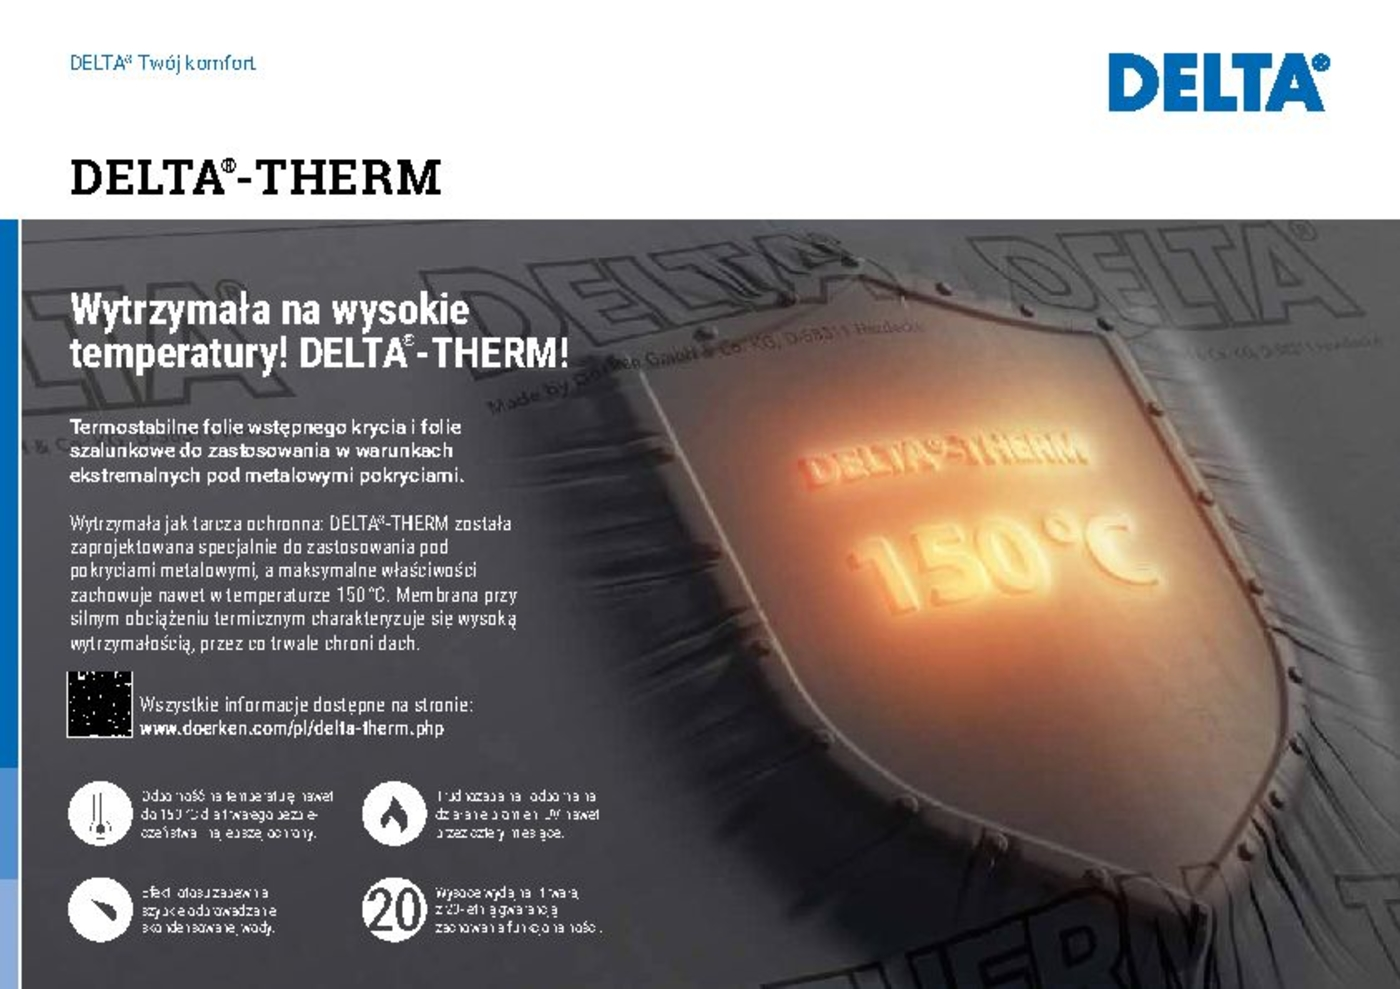 DELTA®-THERM argumentation card